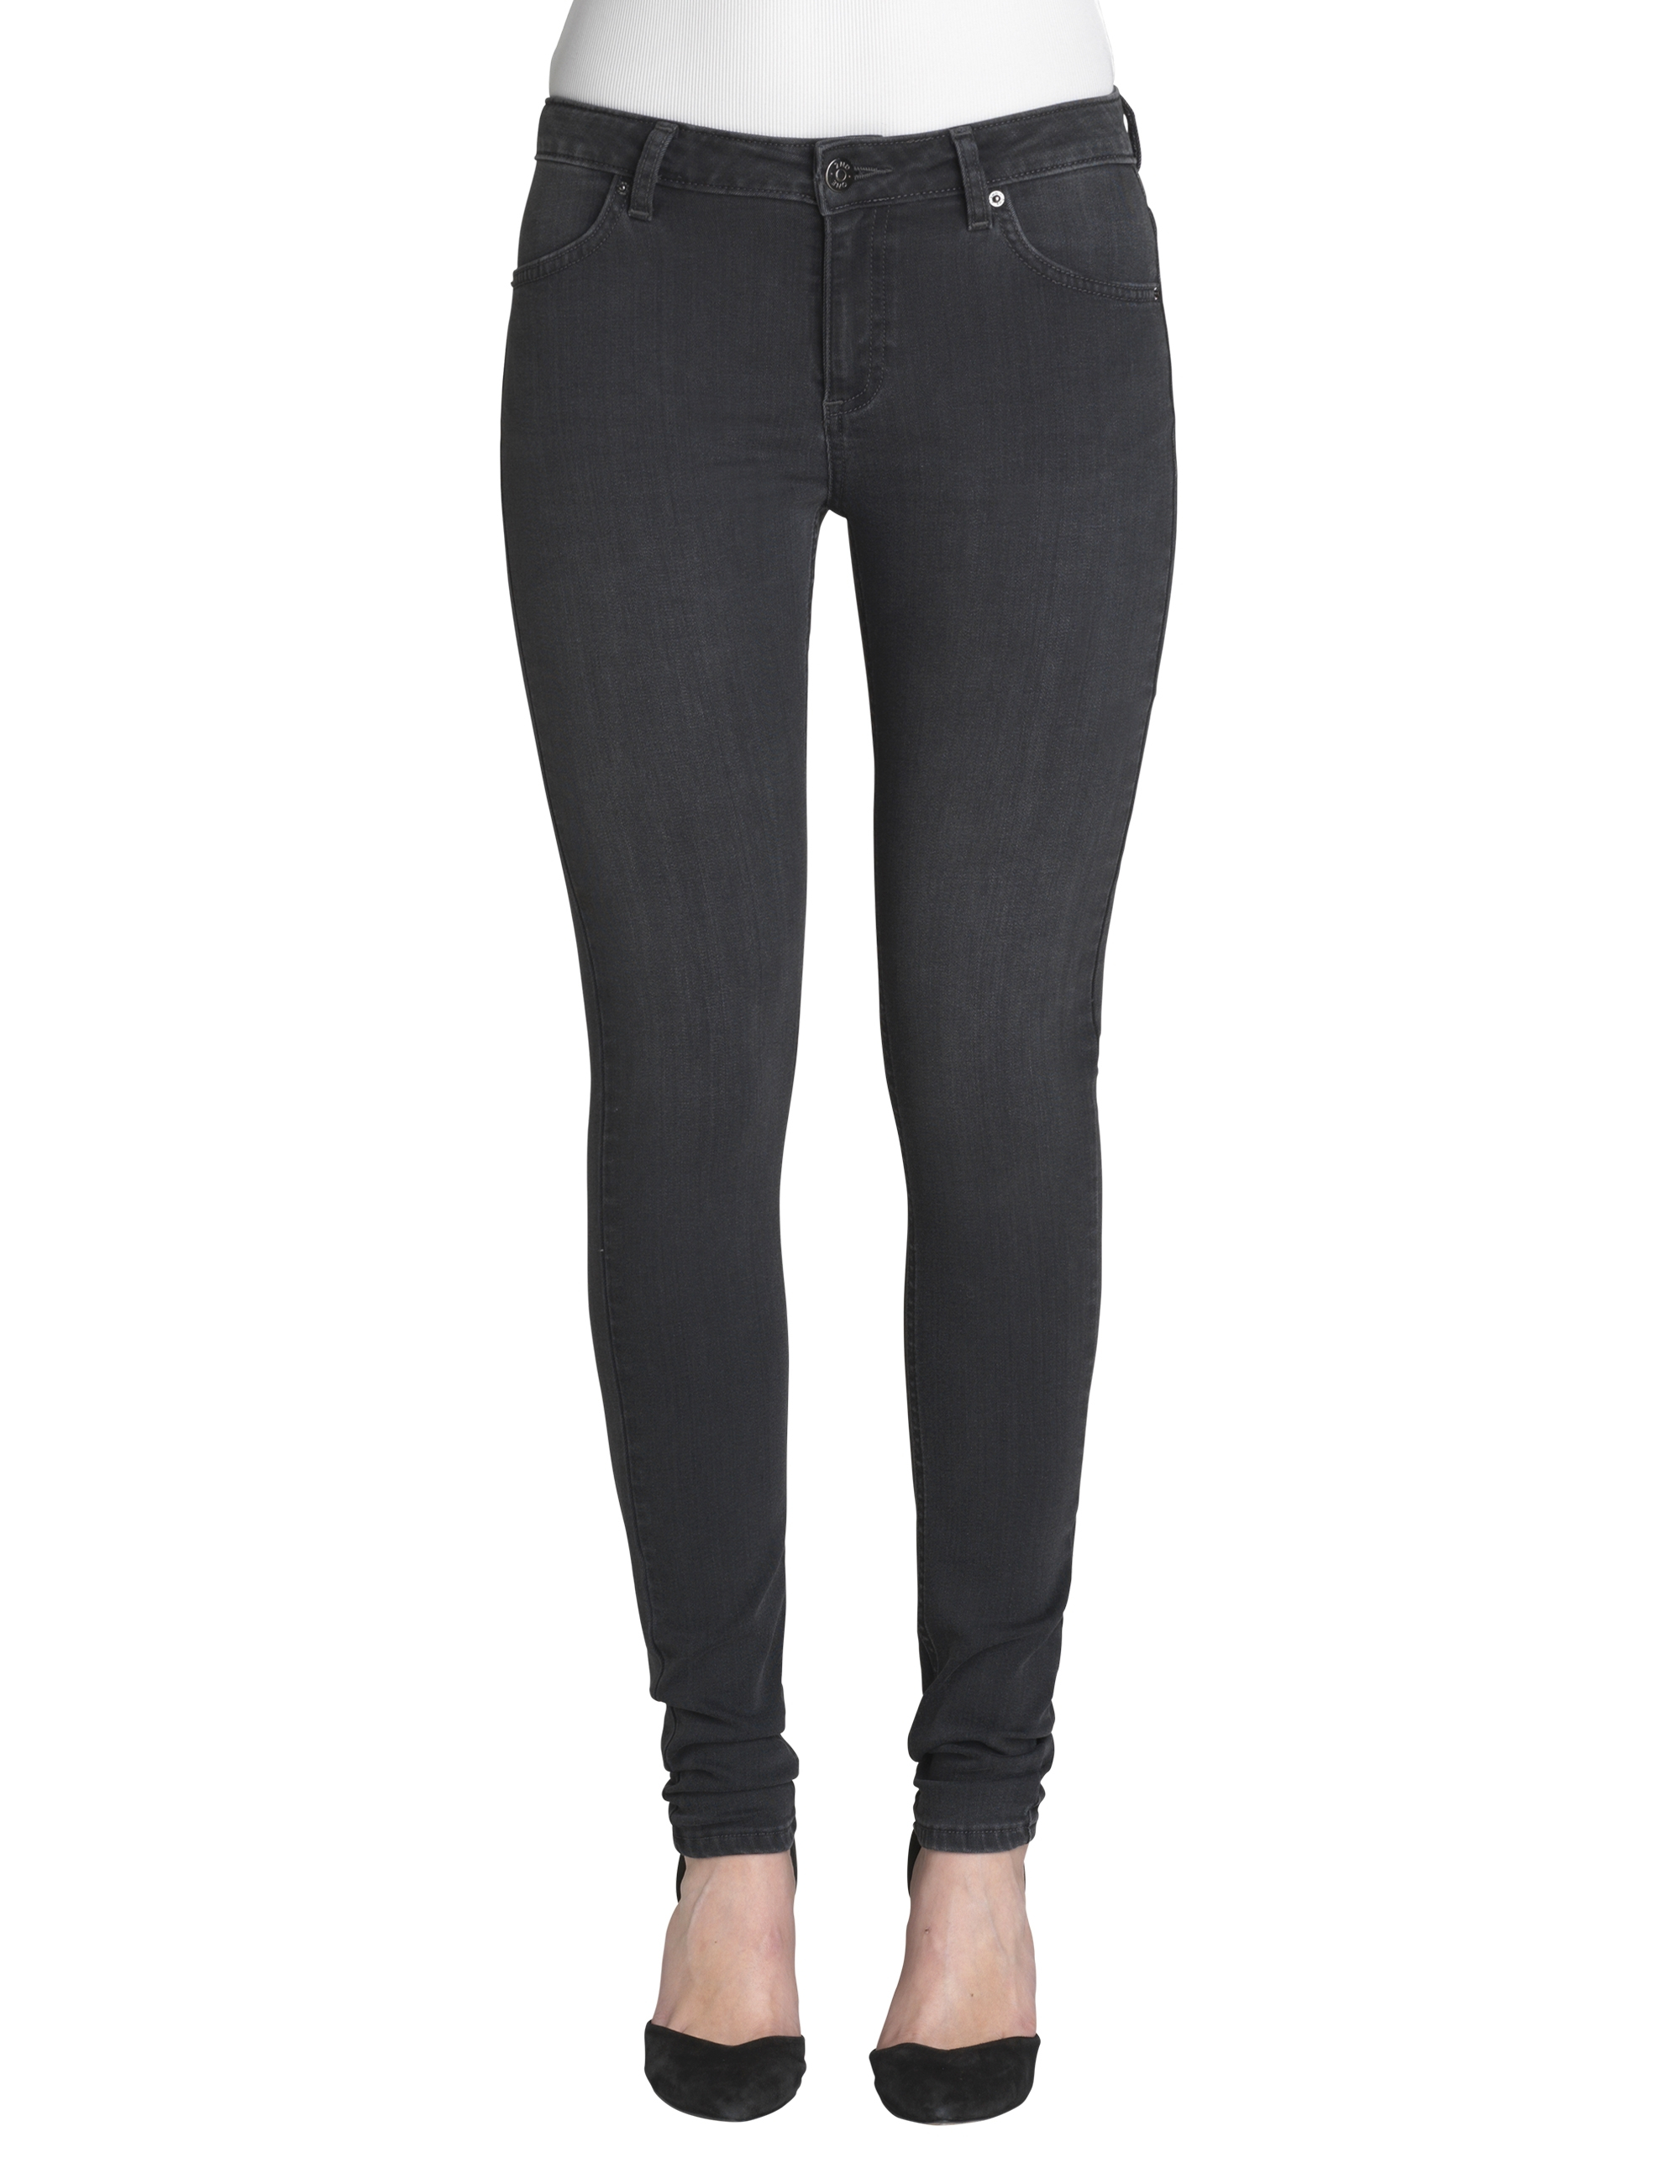 Image of   2ND ONE Nicole Crome Grey Jeans, Crome Grey